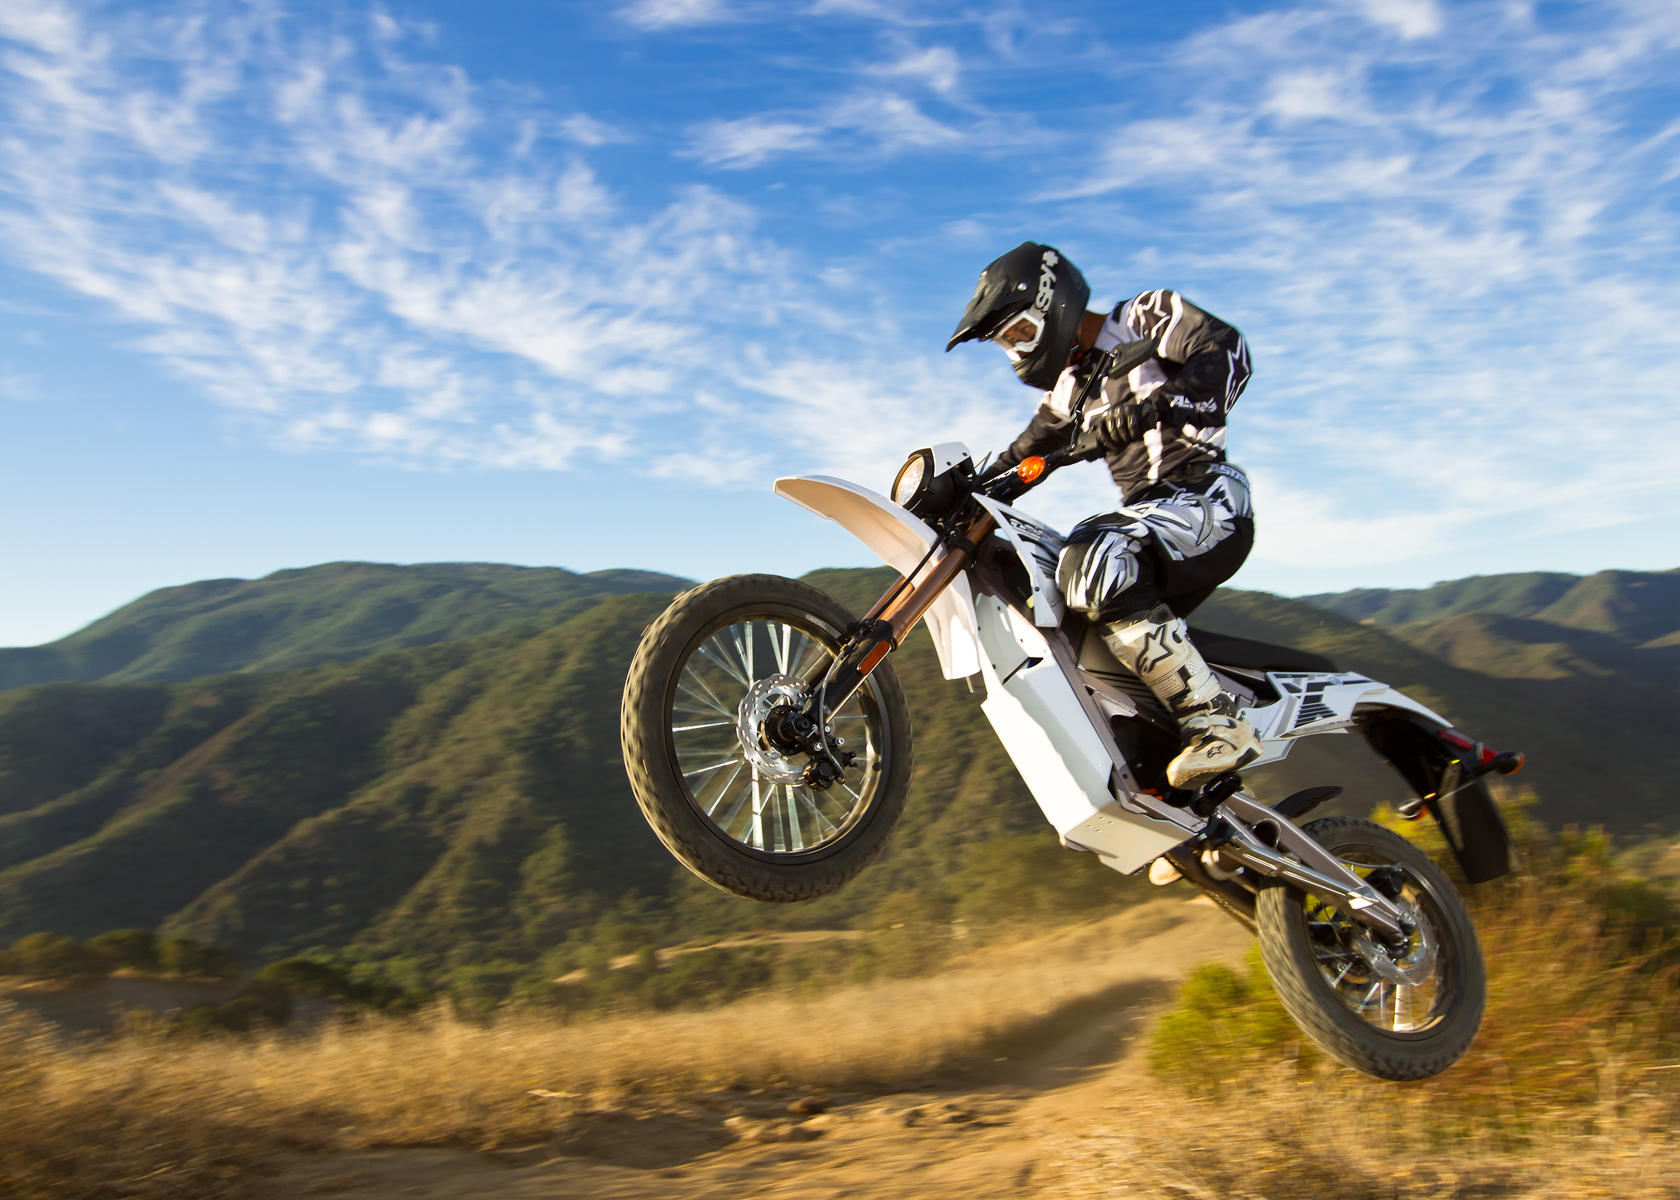 2012 Zero X Electric Motorcycle: Jump